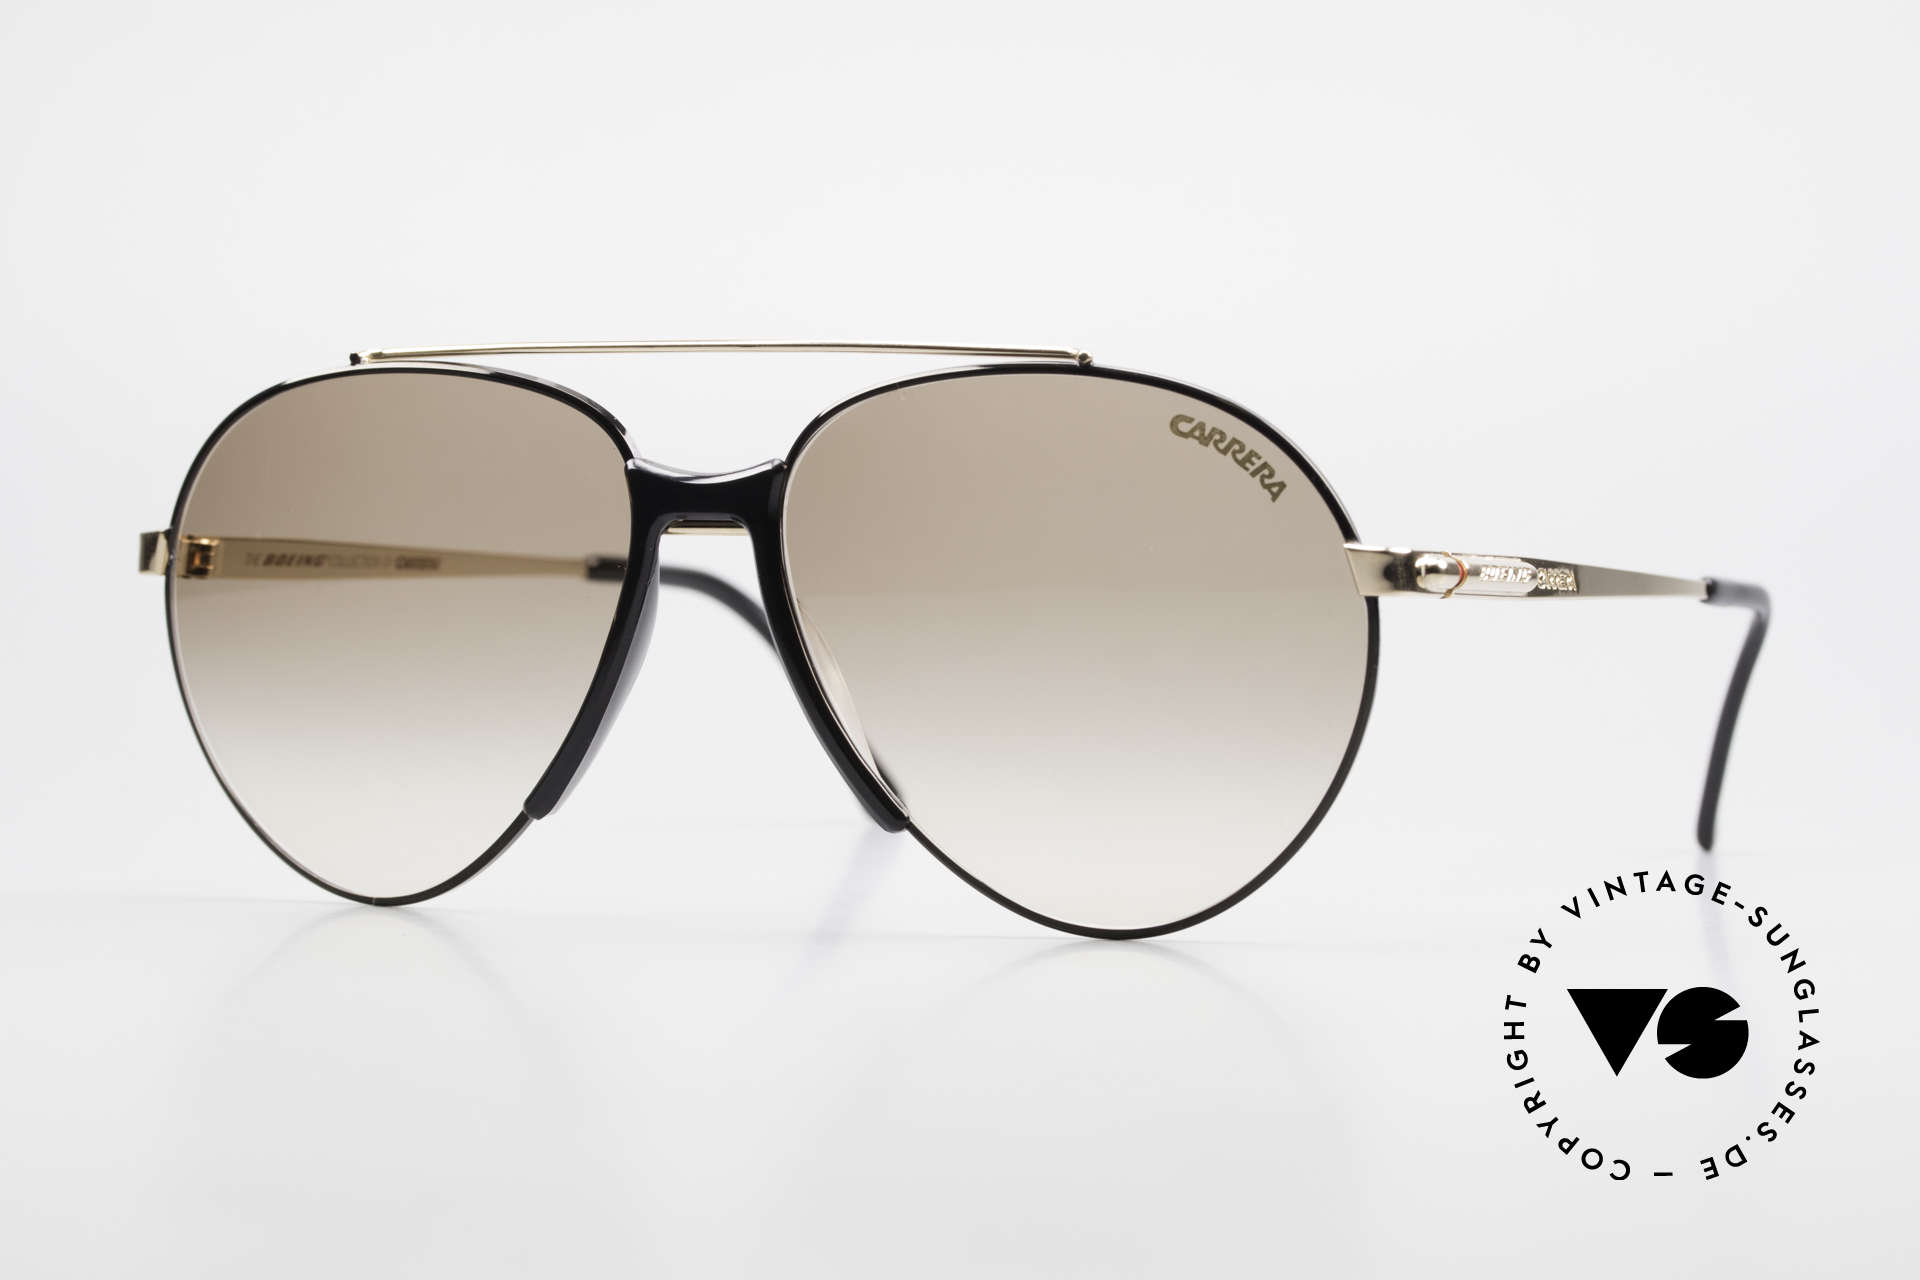 Boeing 5734 Rare 80's Sunglasses Aviator, craftsmanship & design made to Boeing's specifications, Made for Men and Women